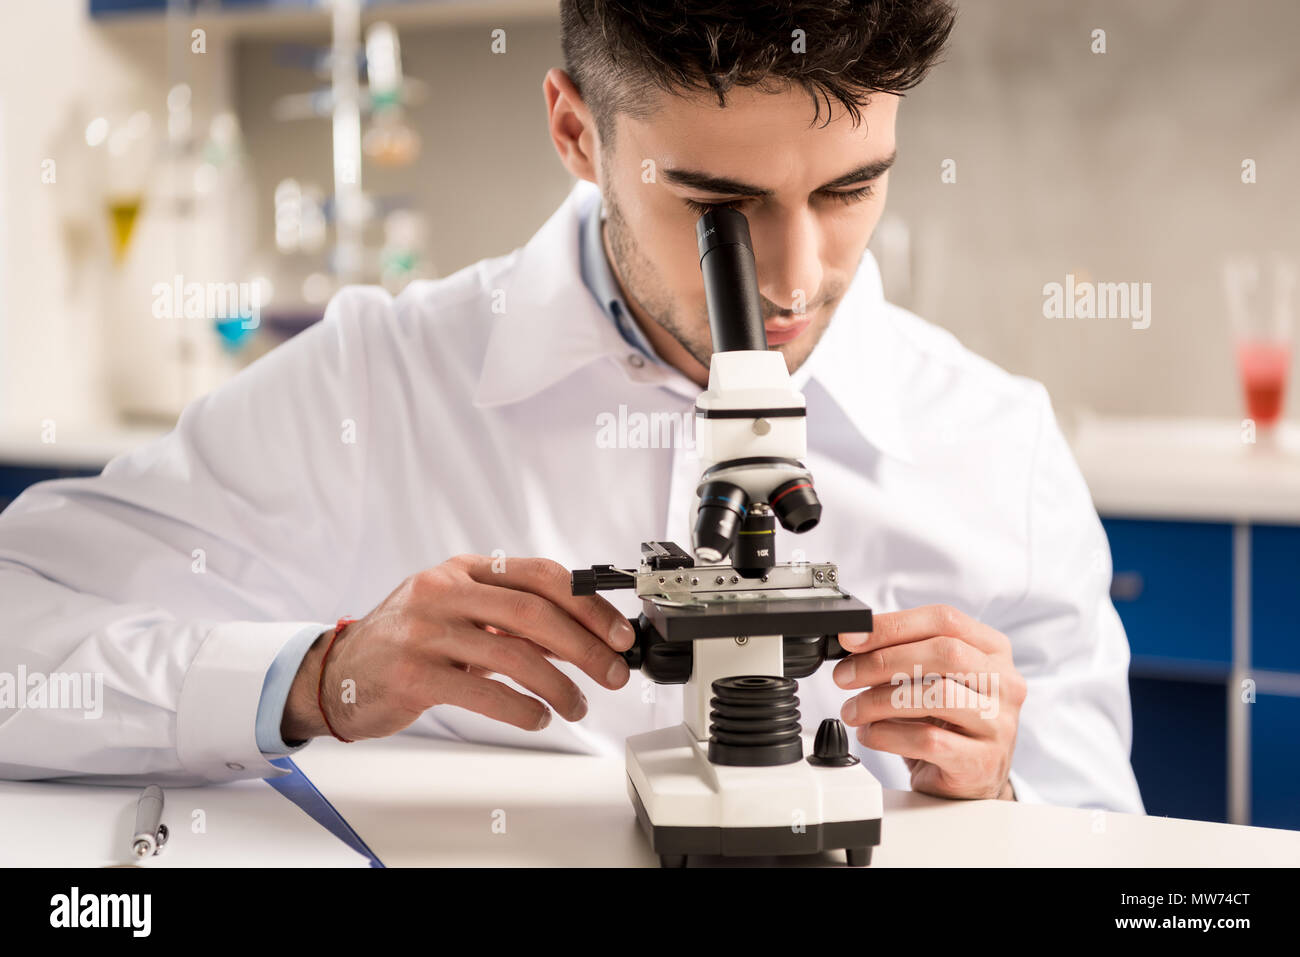 Young lab technician in white coat looking into the microscope in laboratory - Stock Image